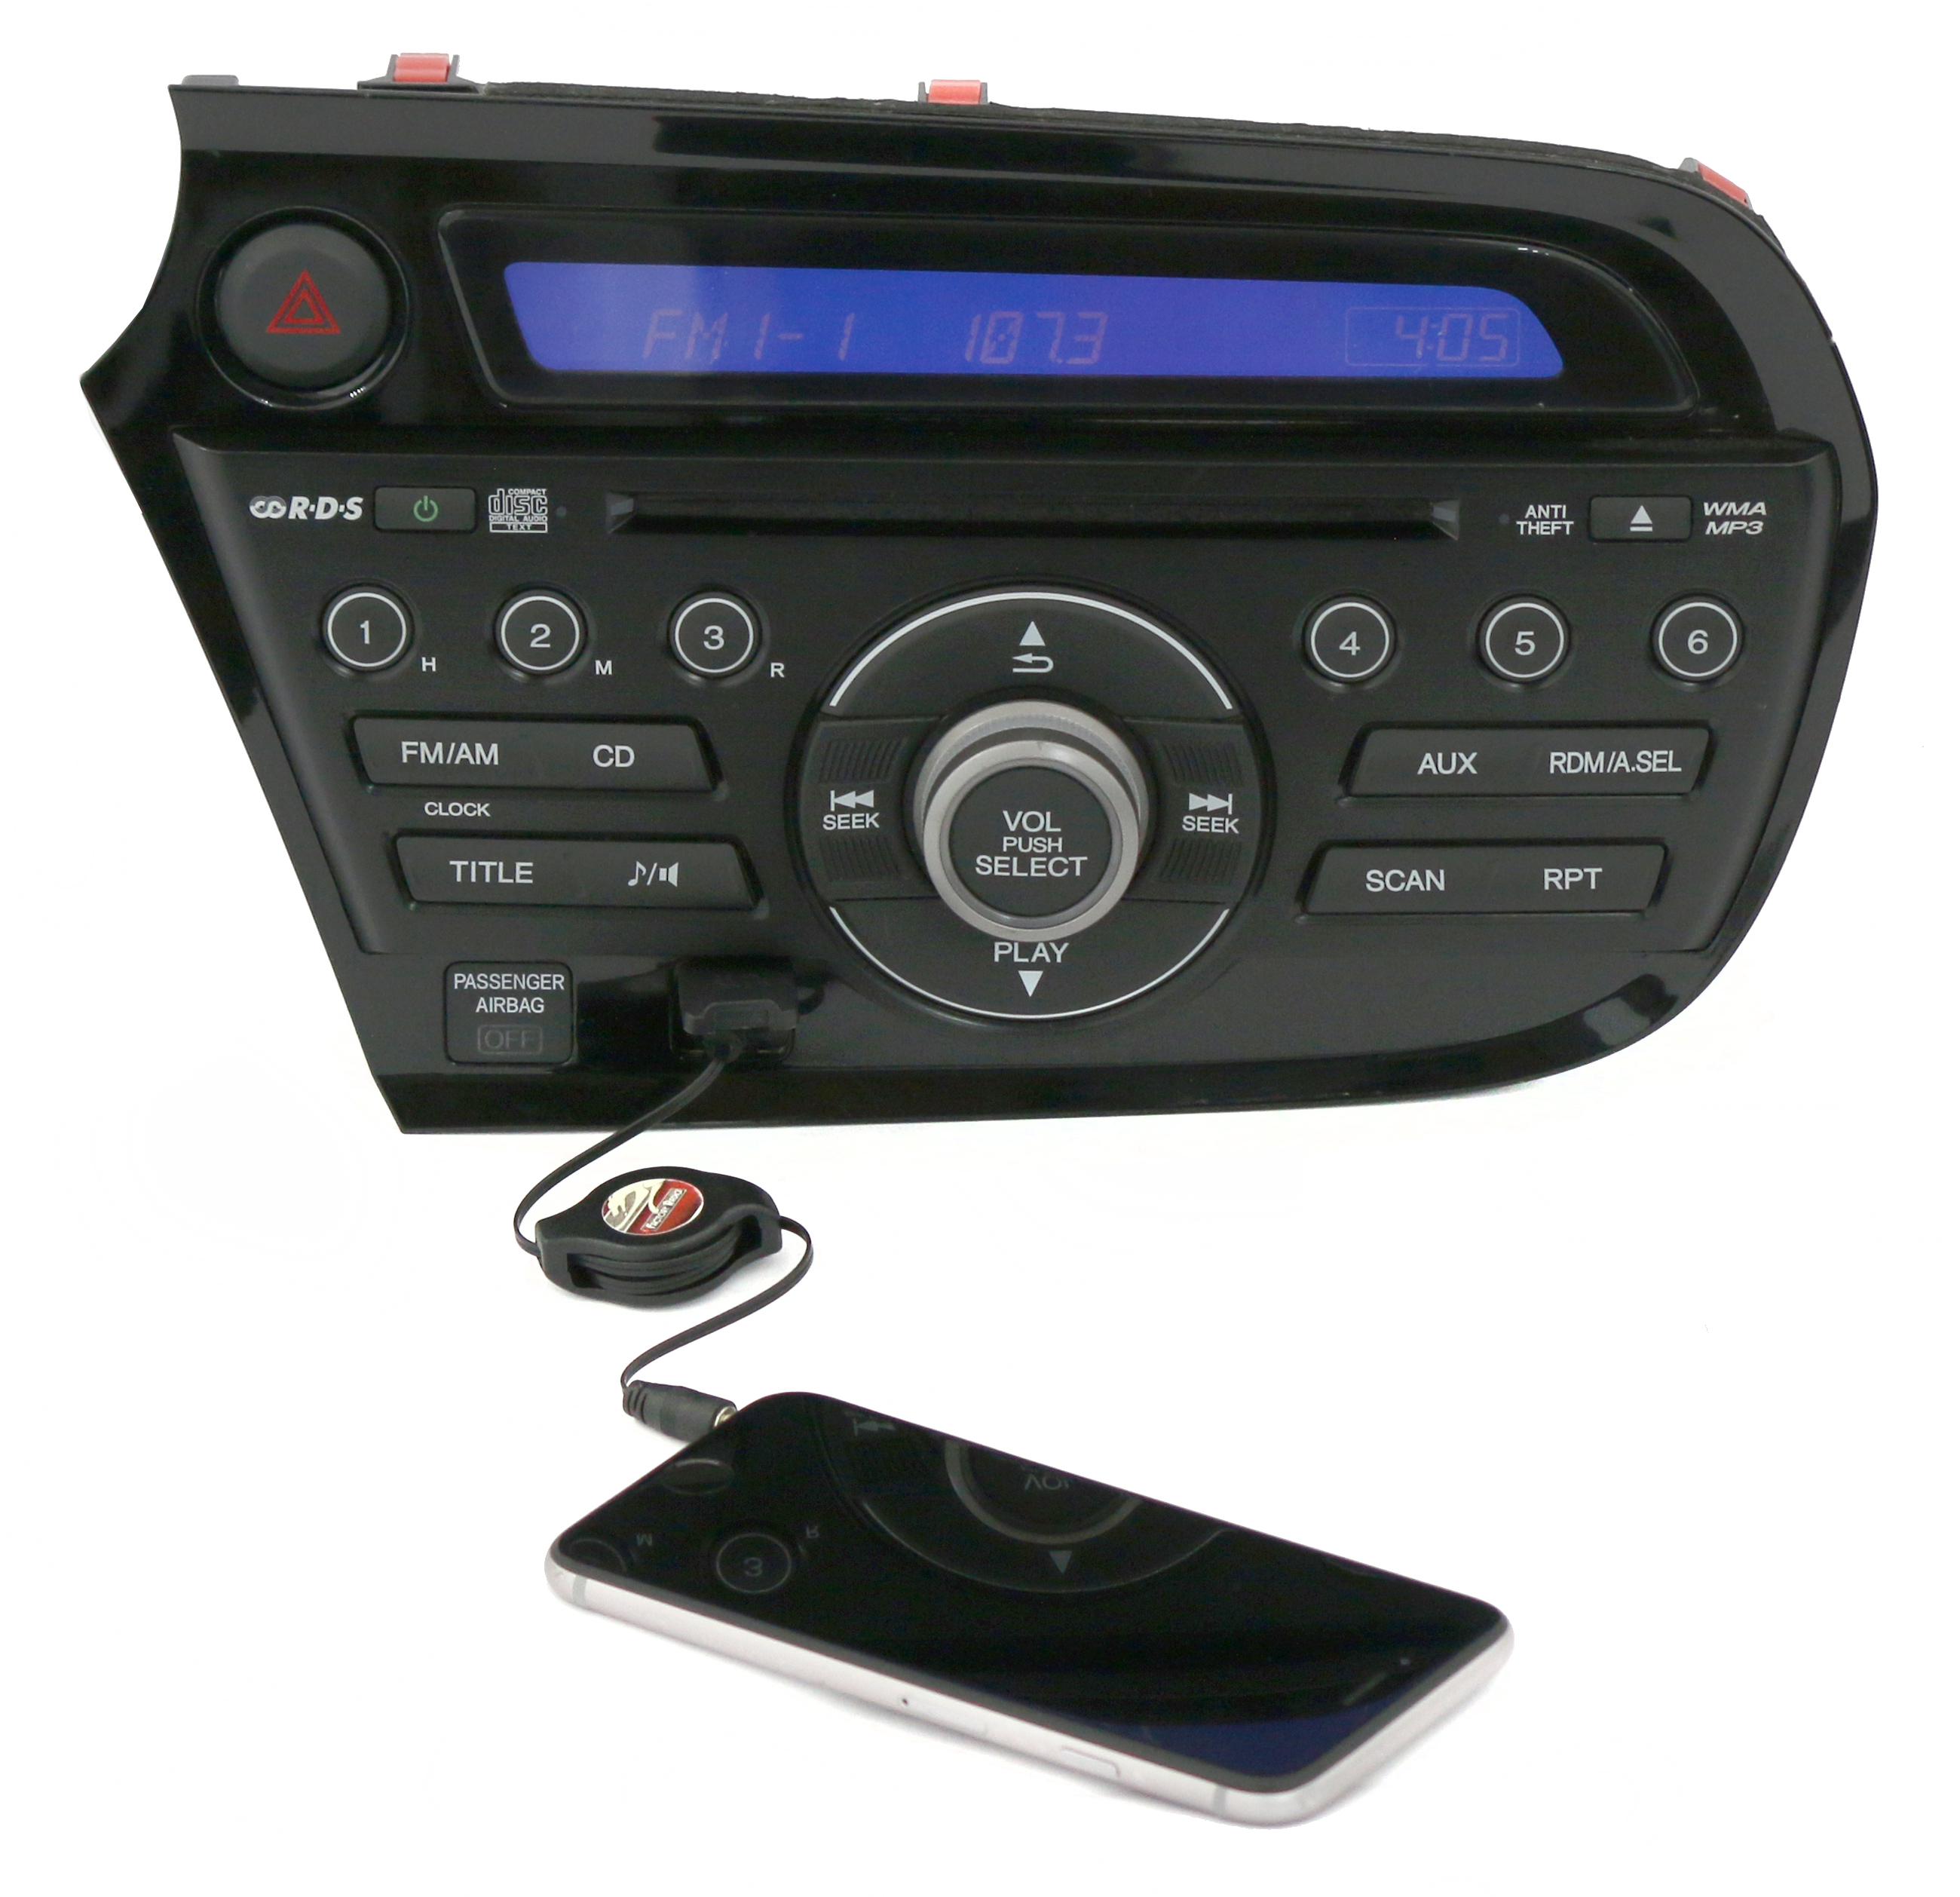 2010-14 Honda Insight AM FM Radio CD Player Aux Input Part Number 39100-TM8-A01 - Refurbished